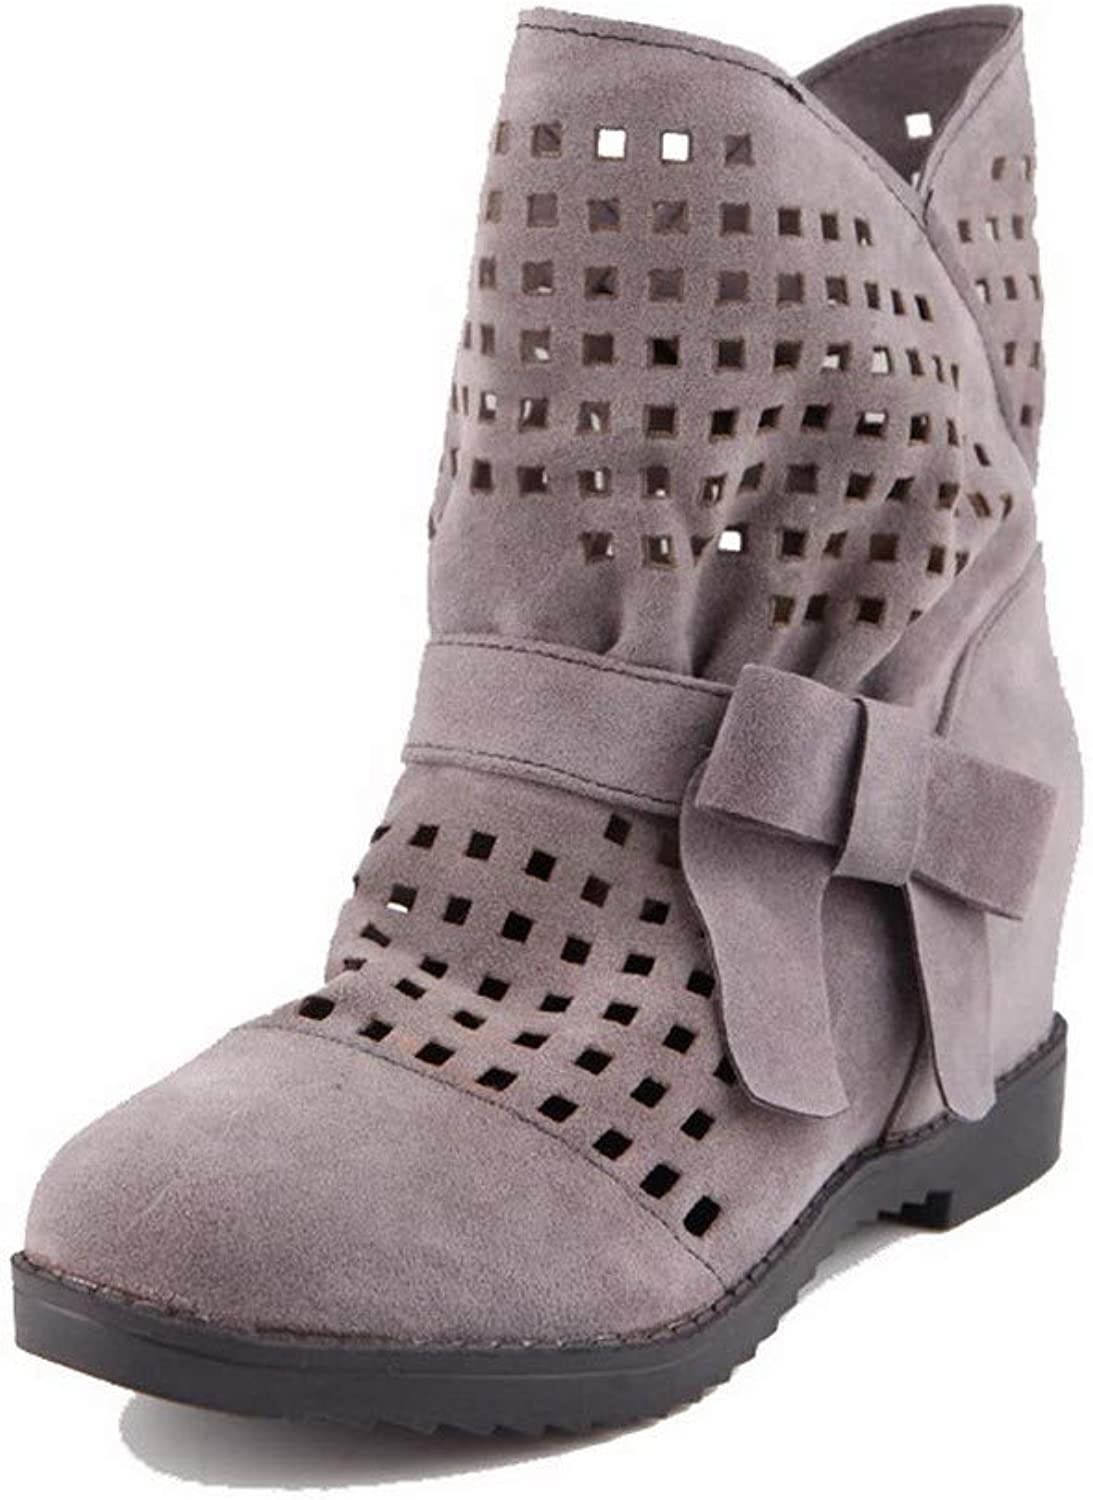 WeiPoot Women's Kitten-Heels Solid Closed-Toe Frosted Pull-On Boots, EGHXH011154